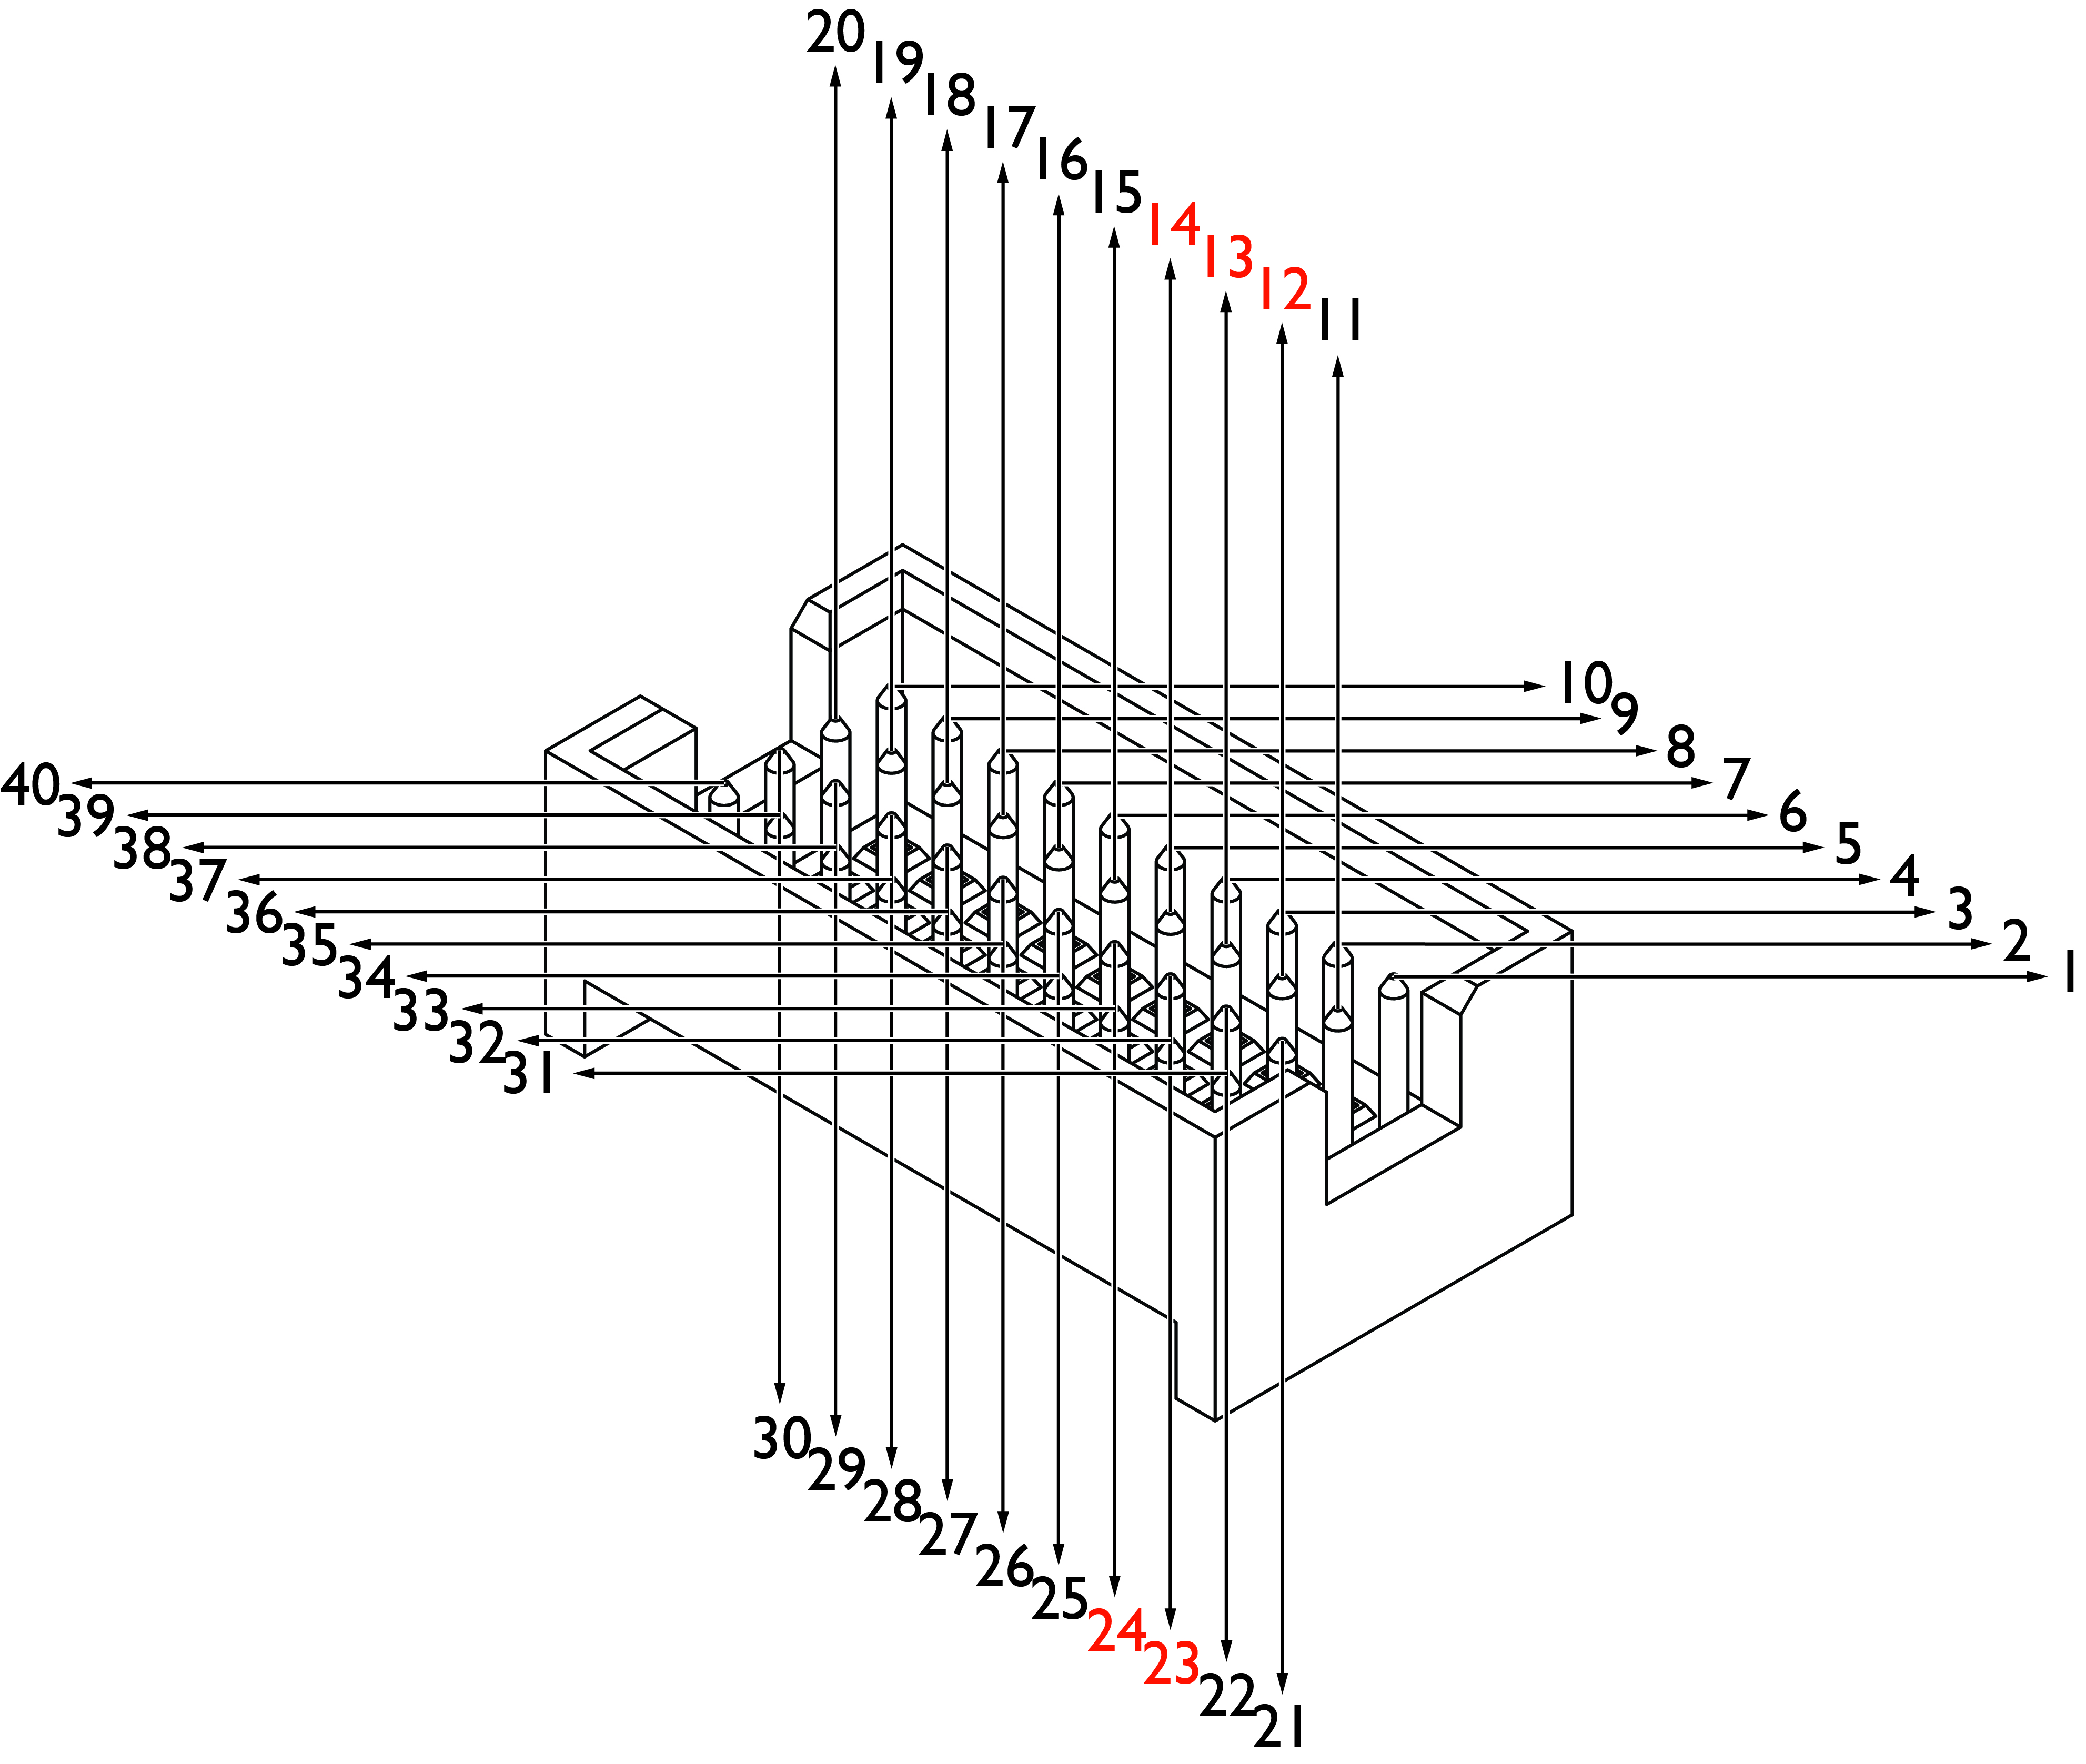 32-channel acute, MOLC